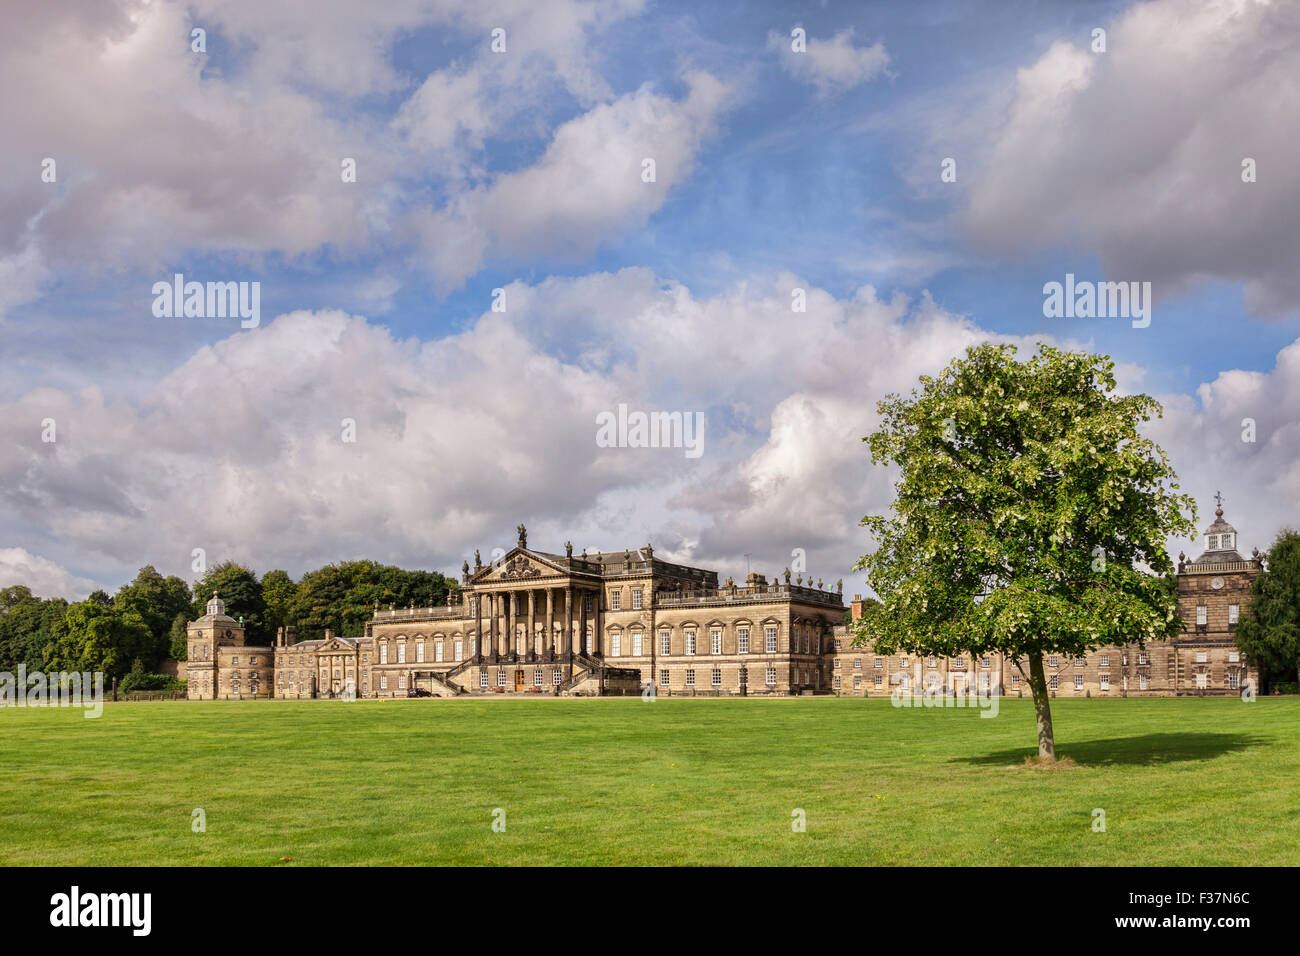 Wentworth Woodhouse, ancestral home of the Fitzwilliam family, near Rotherham in South Yorkshire, England Stock Photo